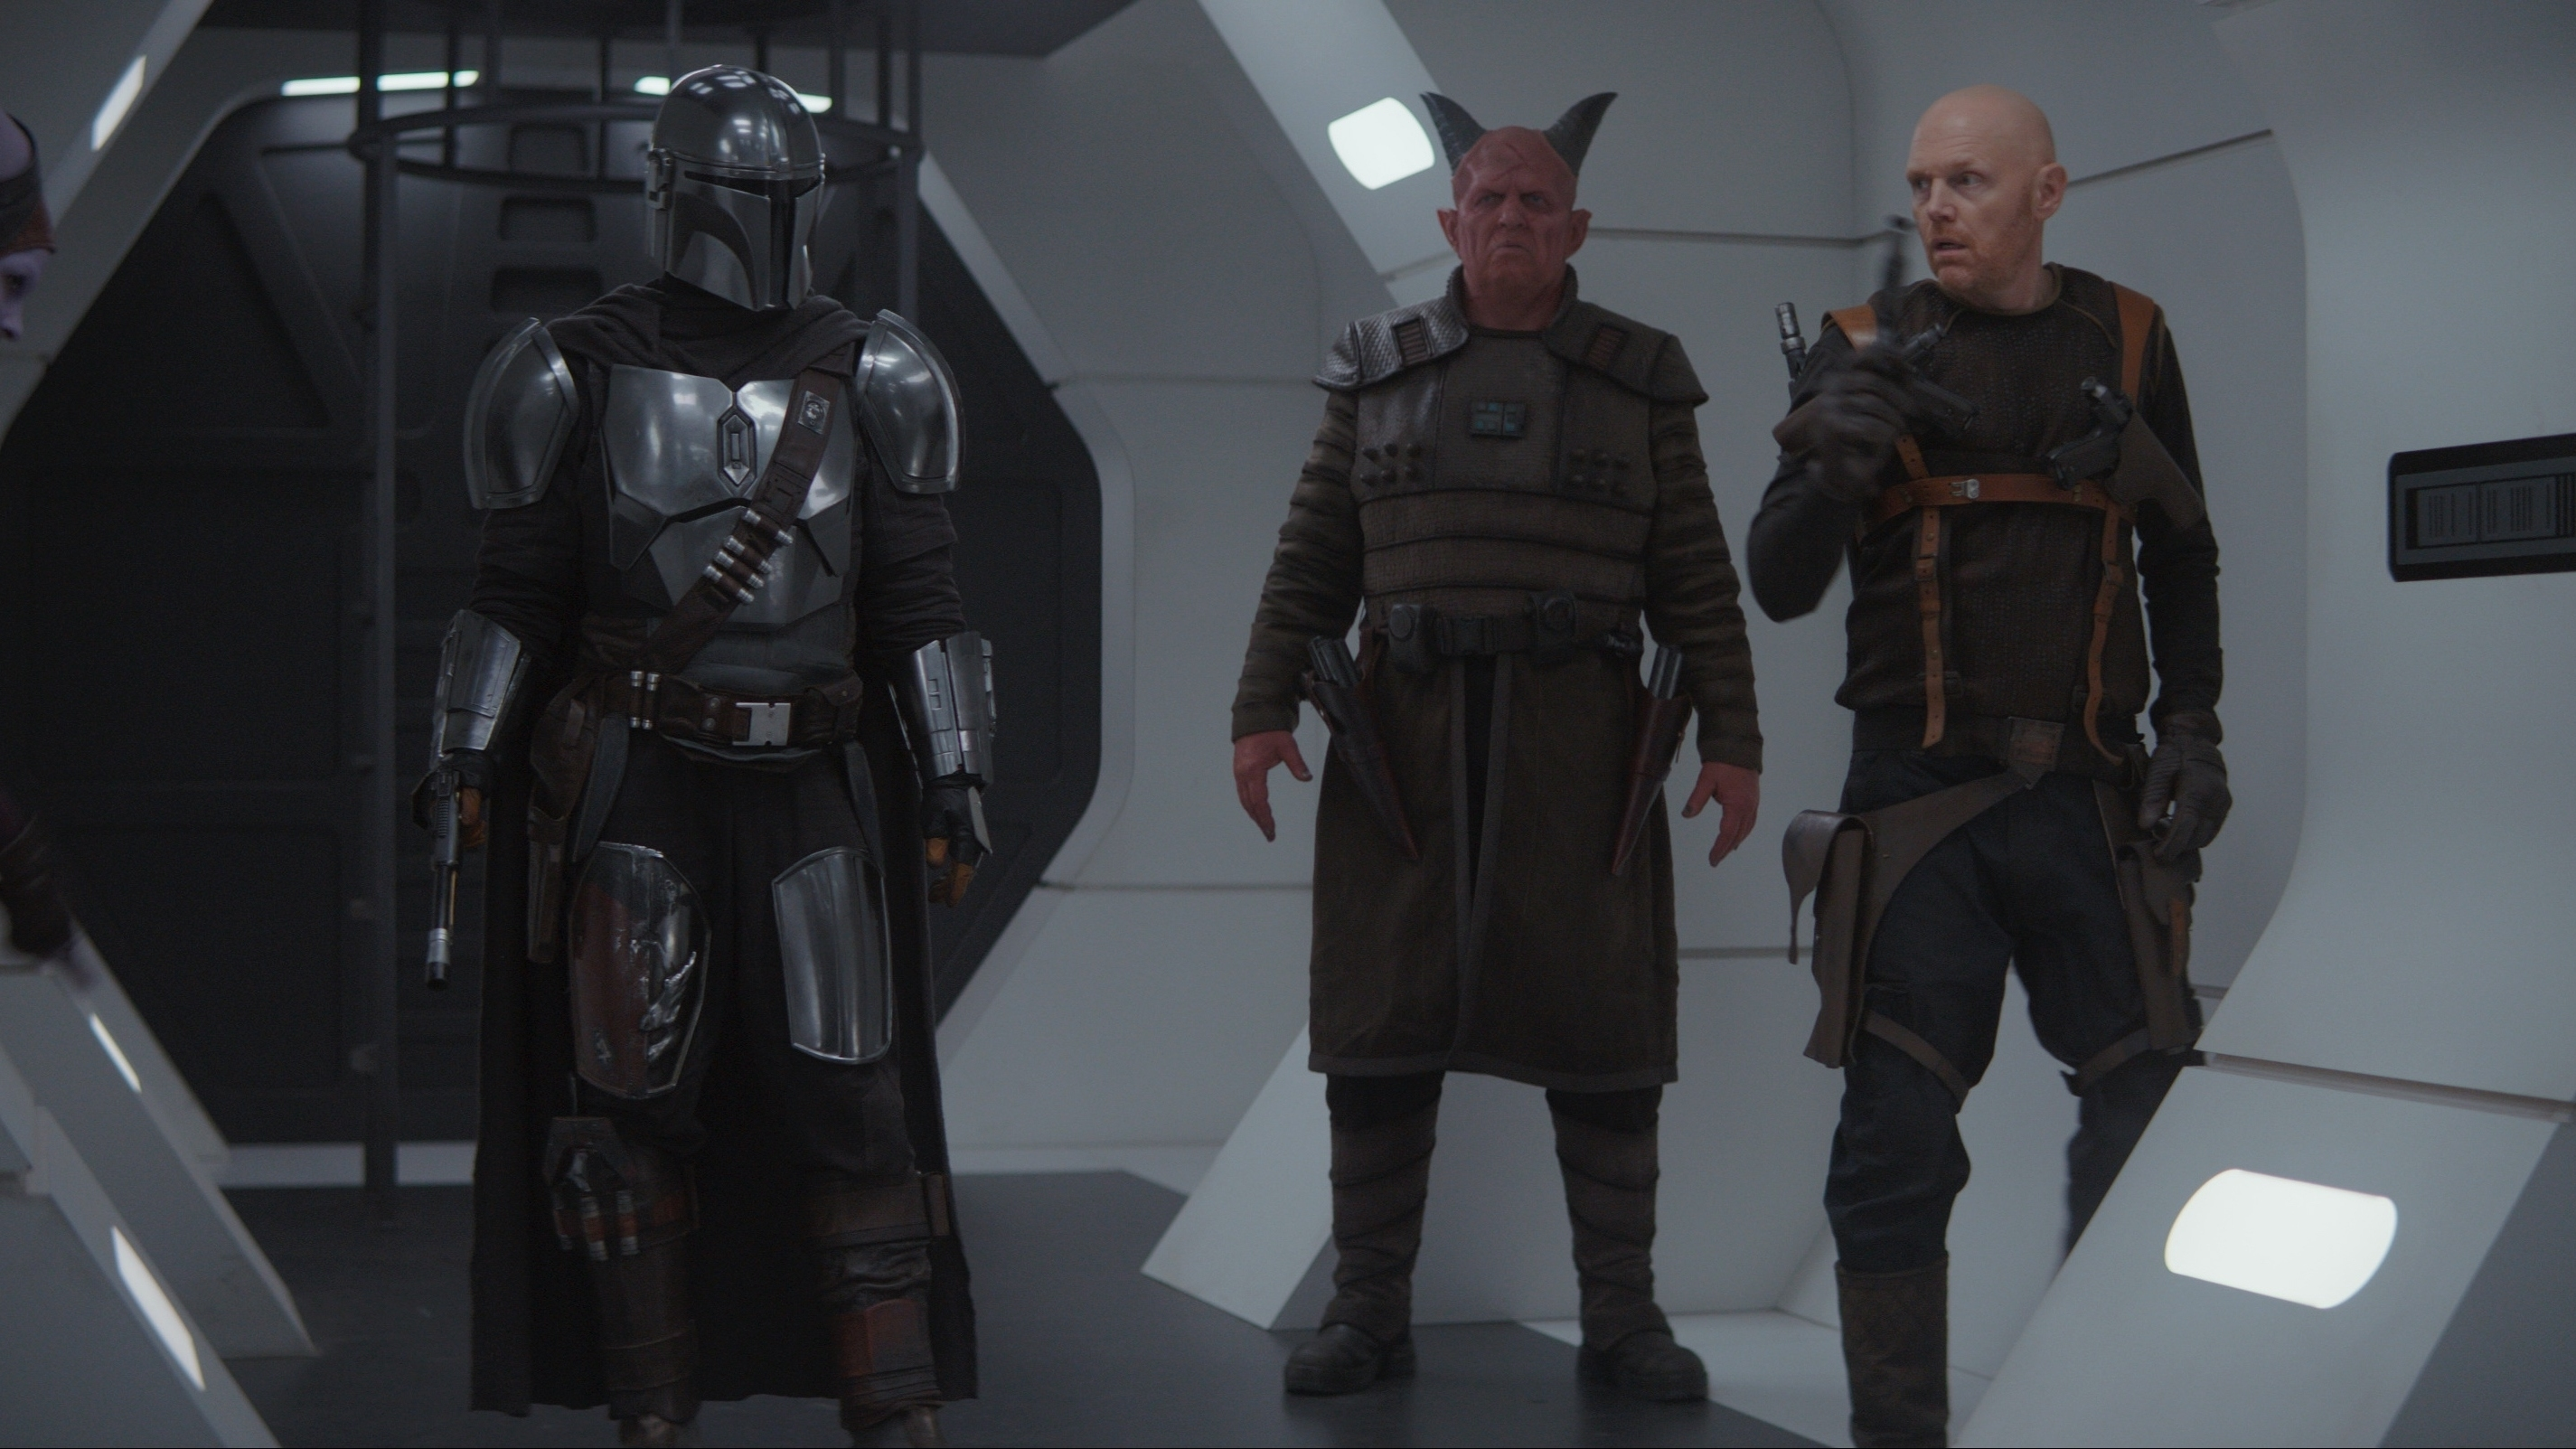 In the episode, Mando arrives on a desolate space station where he meets with some old associates from his past.